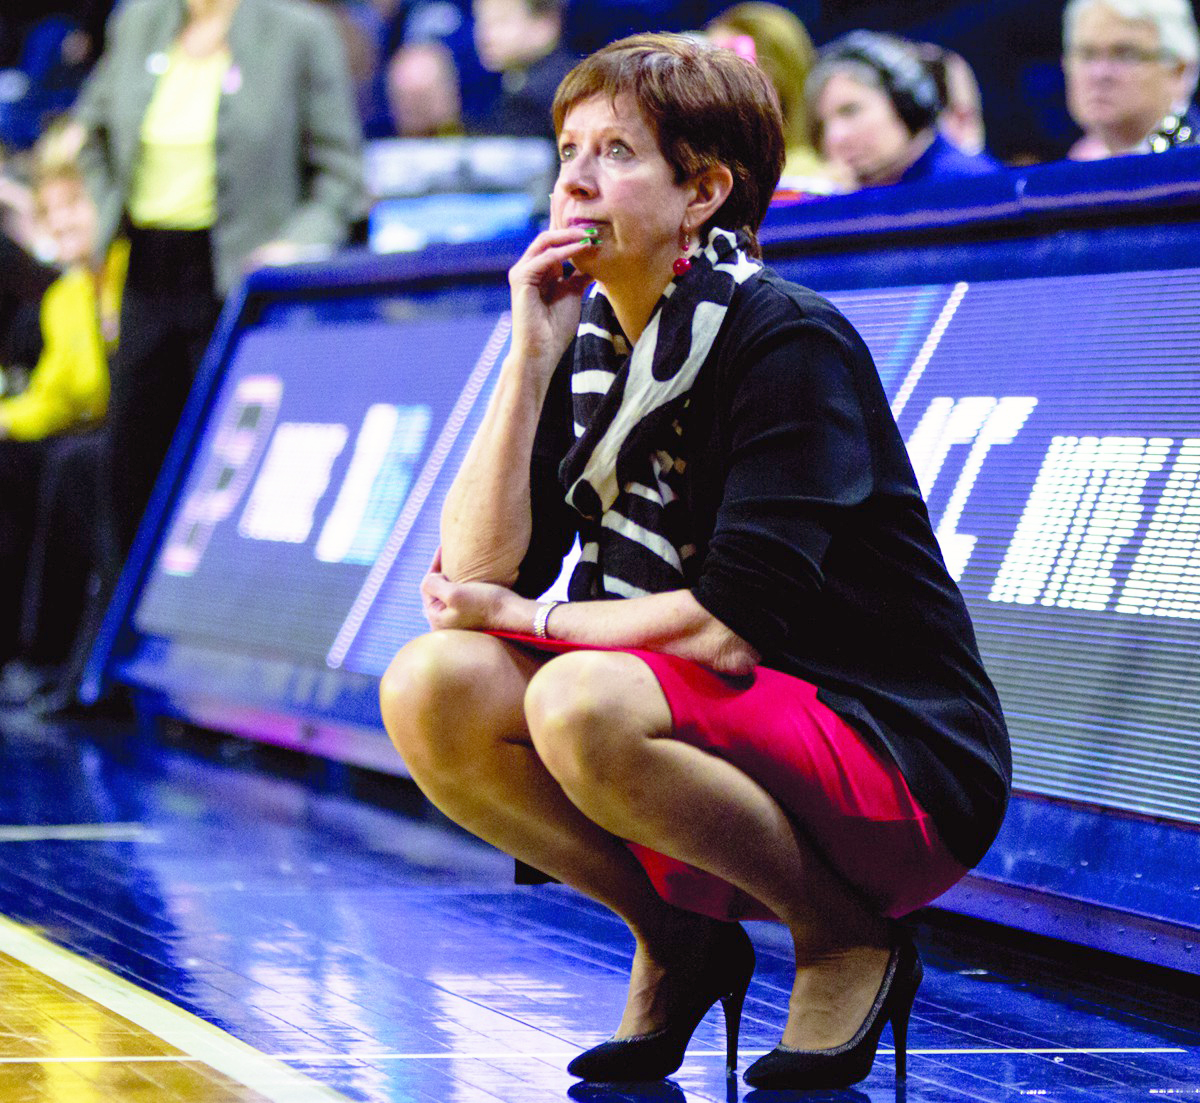 Irish head coach and Naismith Basketball Hall of Fame inductee Muffet McGraw crouches beside the court during Notre Dame's 88-82 overtime win over Purdue on March 19 at Purcell Pavilion.